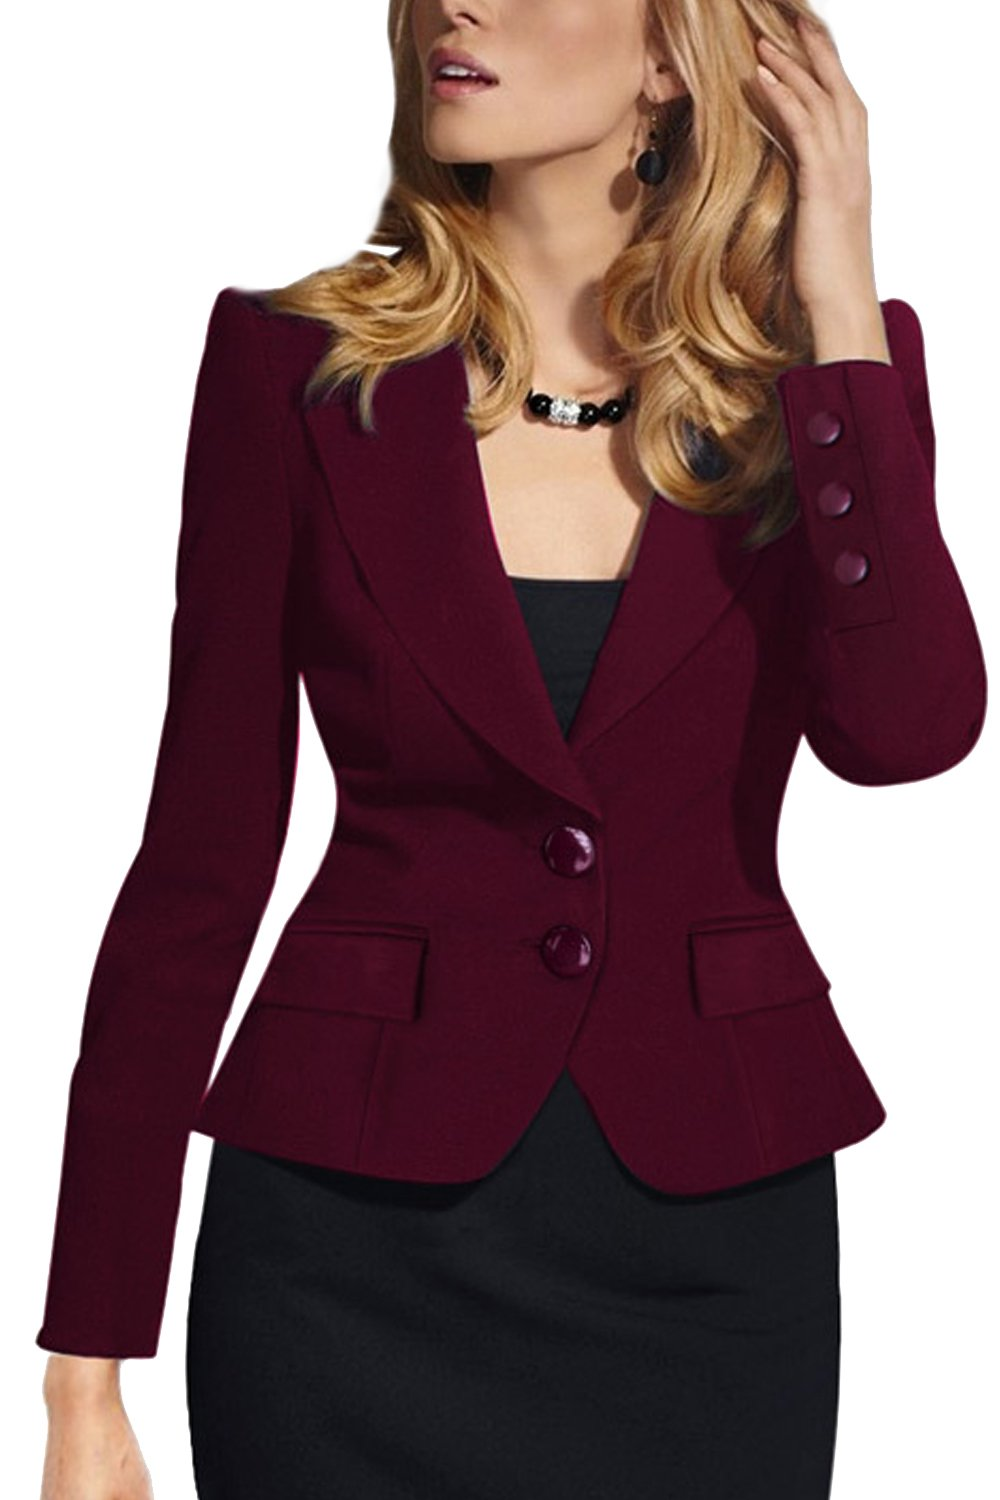 Women Elegant Long Sleeve Short Office Business Suit Blazer Plus Size CAFZ1295